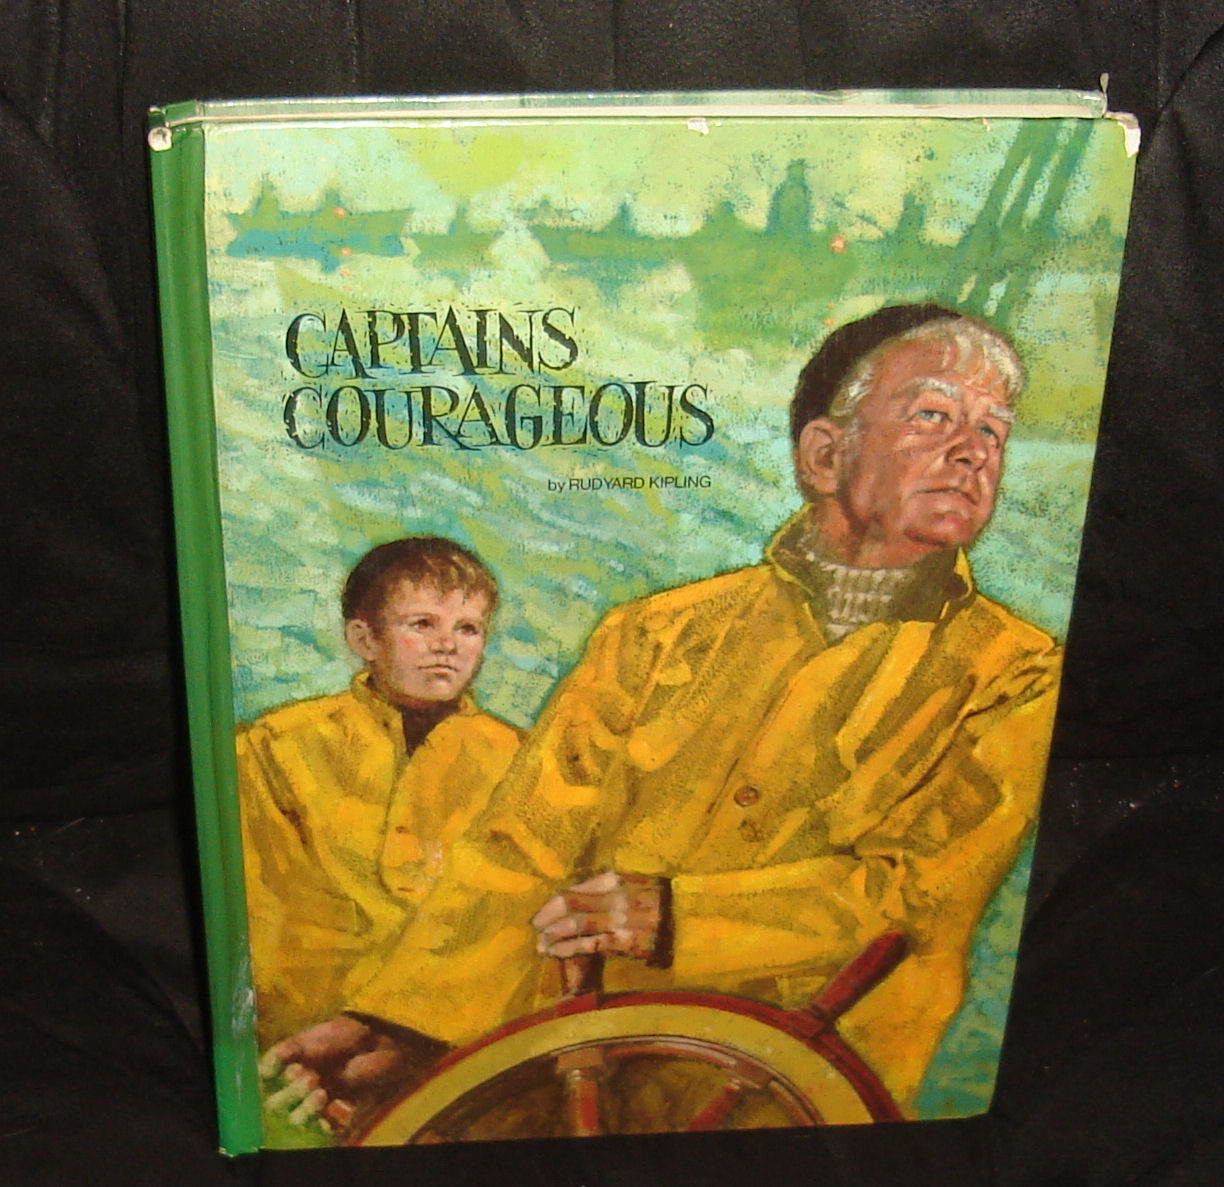 The copy of Captains Courageous that I received in the late 1970s or very early 1980s